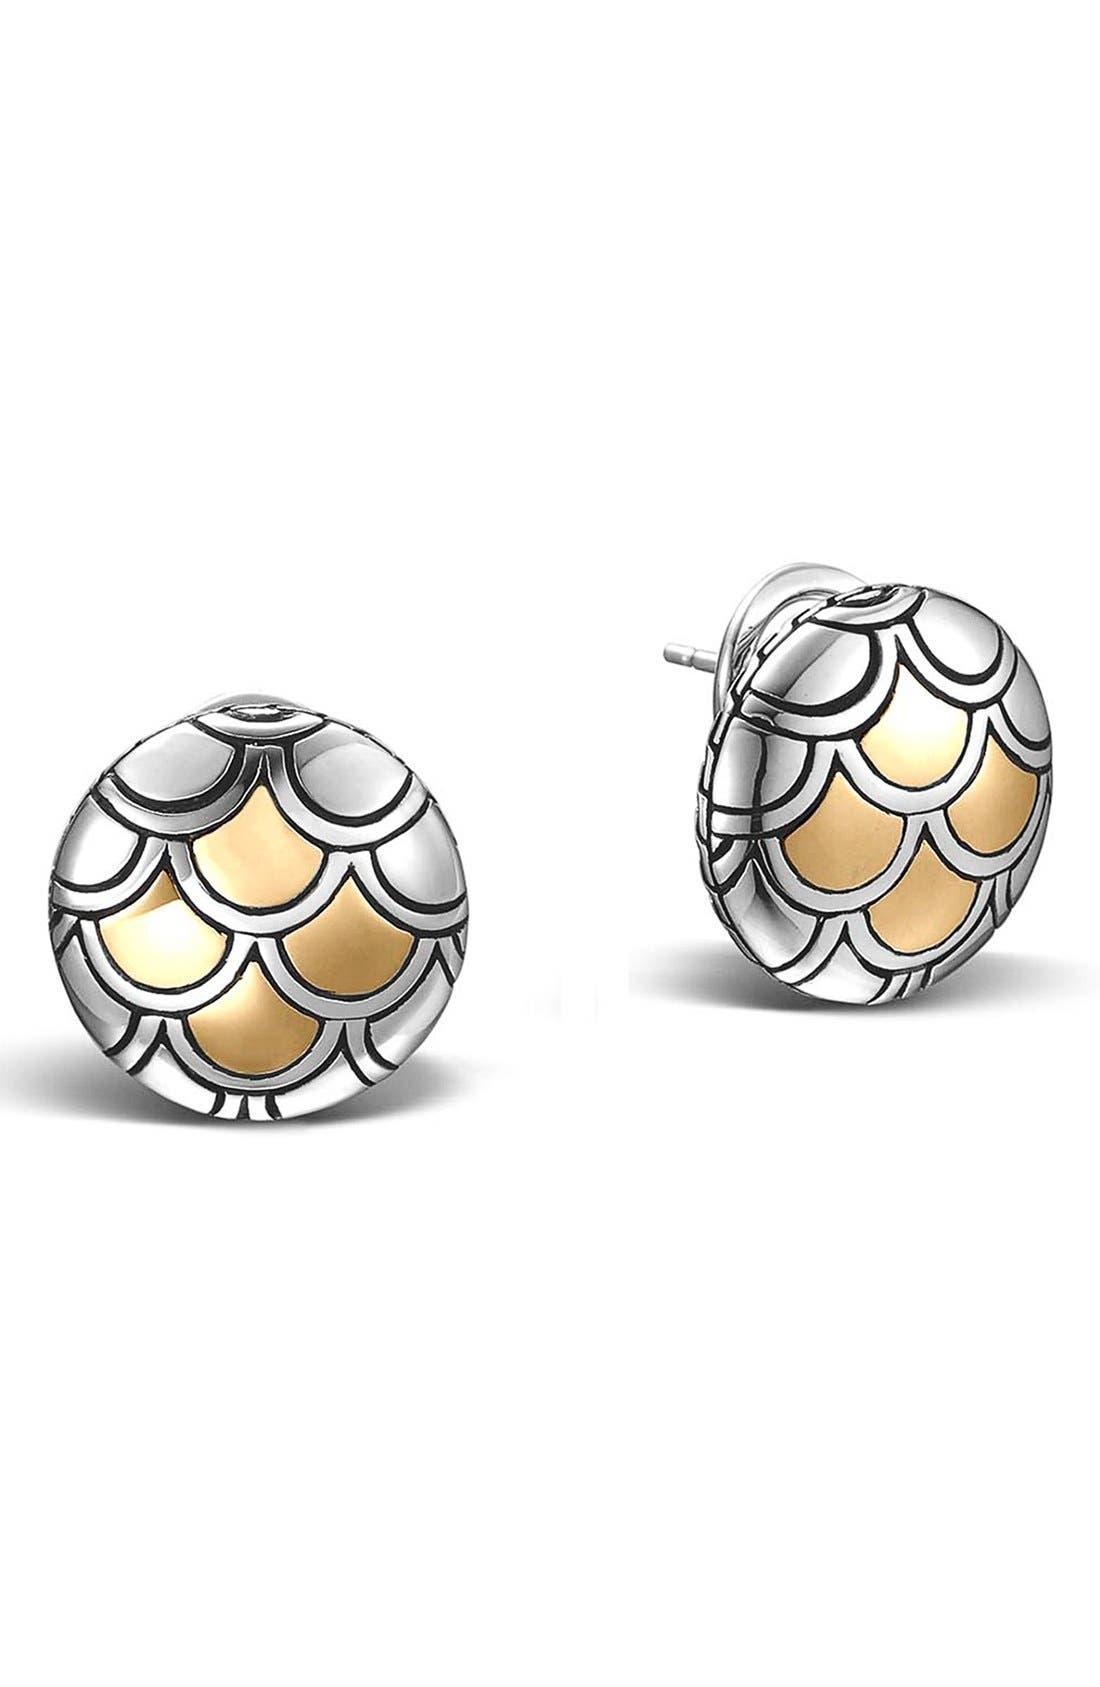 Main Image - John Hardy 'Legends' Scale Stud Earrings